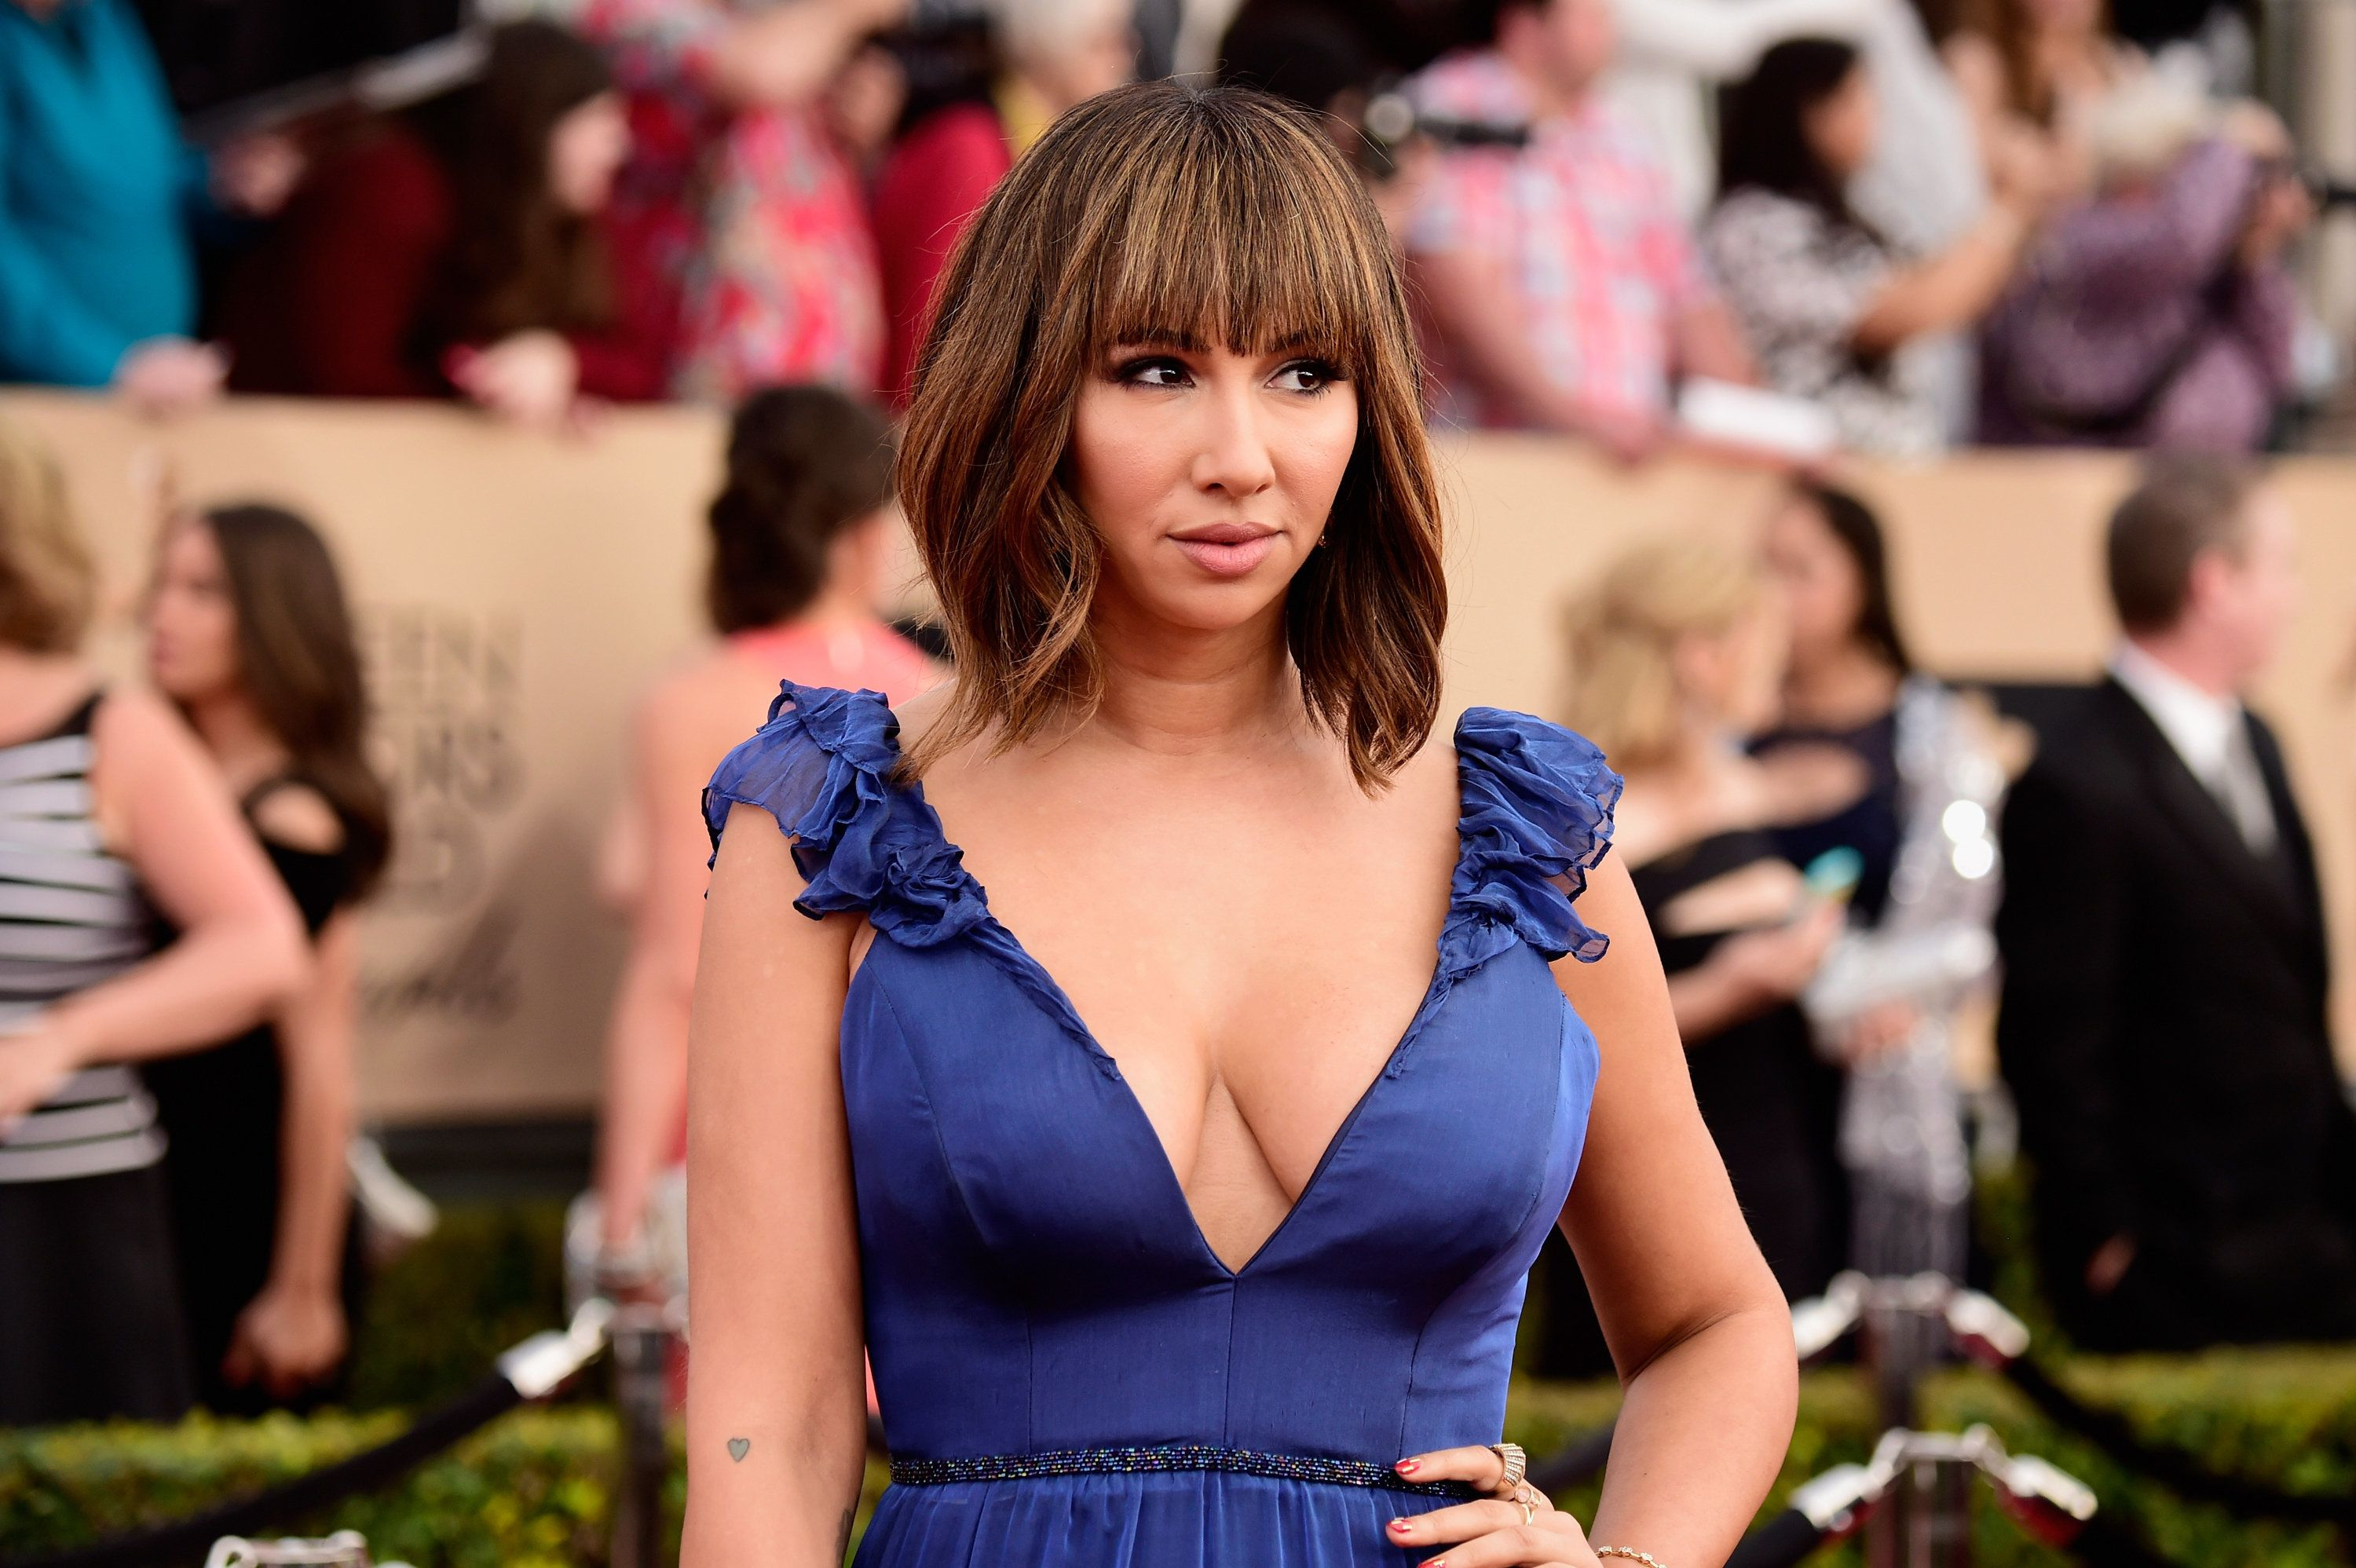 LOS ANGELES, CA - JANUARY 30:  Actress Jackie Cruz attends the 22nd Annual Screen Actors Guild Awards at The Shrine Auditorium on January 30, 2016 in Los Angeles, California.  (Photo by Frazer Harrison/Getty Images)